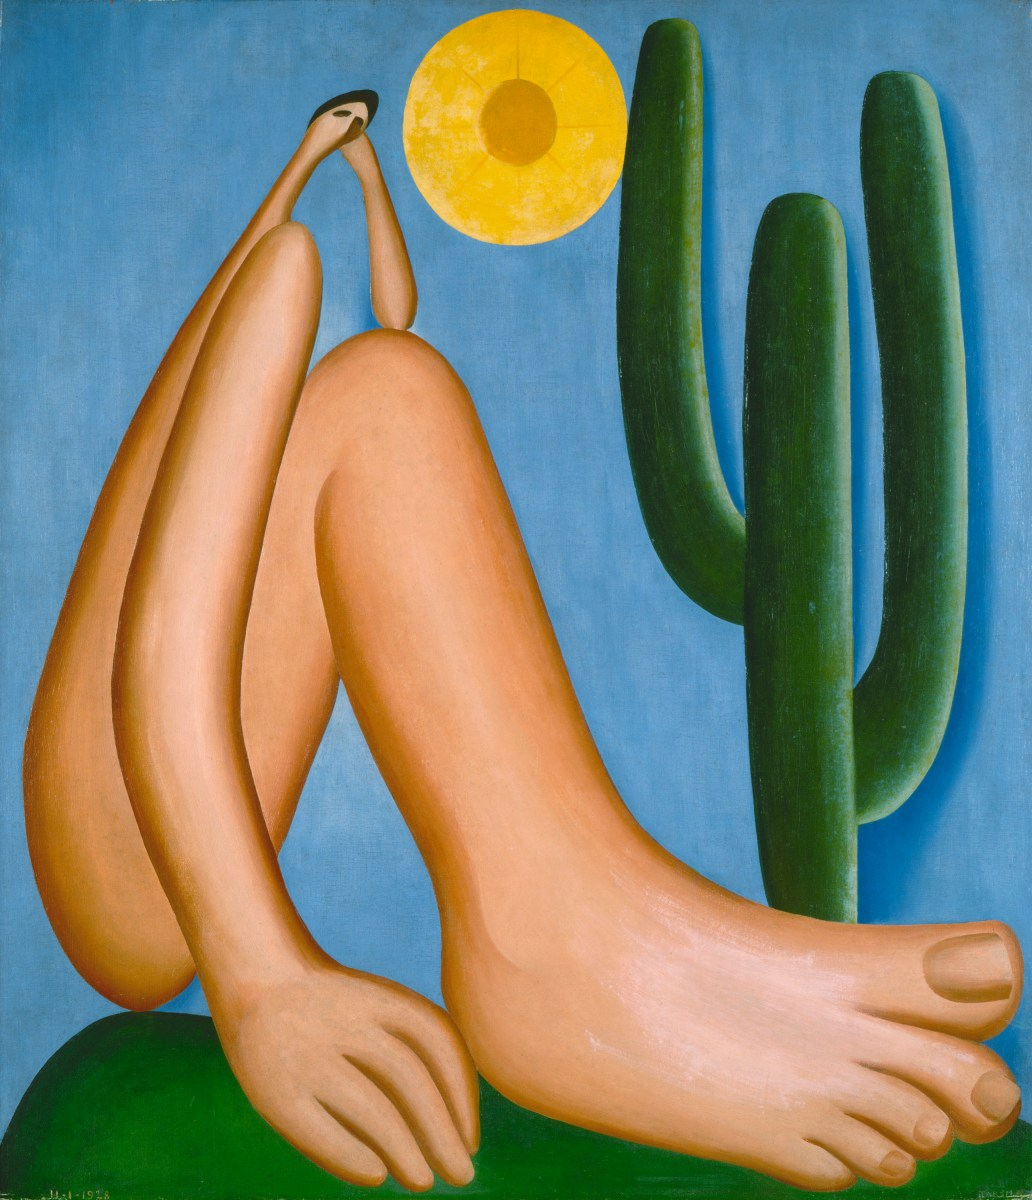 Tupi or not Tupi? A Review of Tarsila do Amaral at the Art Institute of Chicago